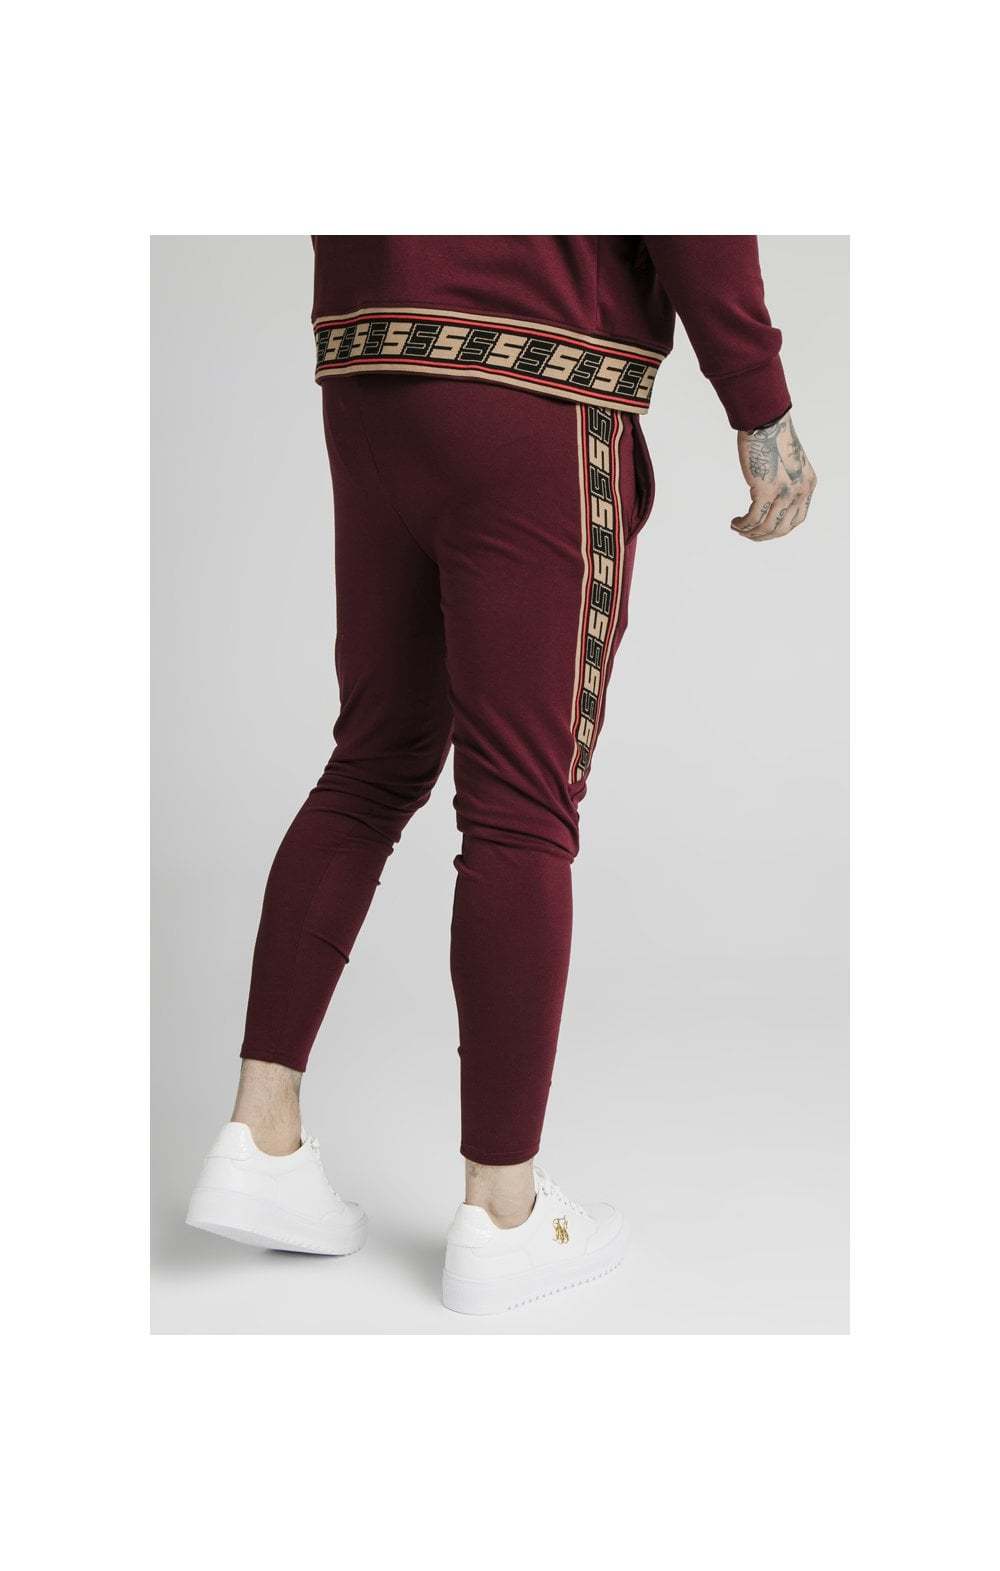 SikSilk Retro Jacquard Athlete Pants - Burgundy (3)